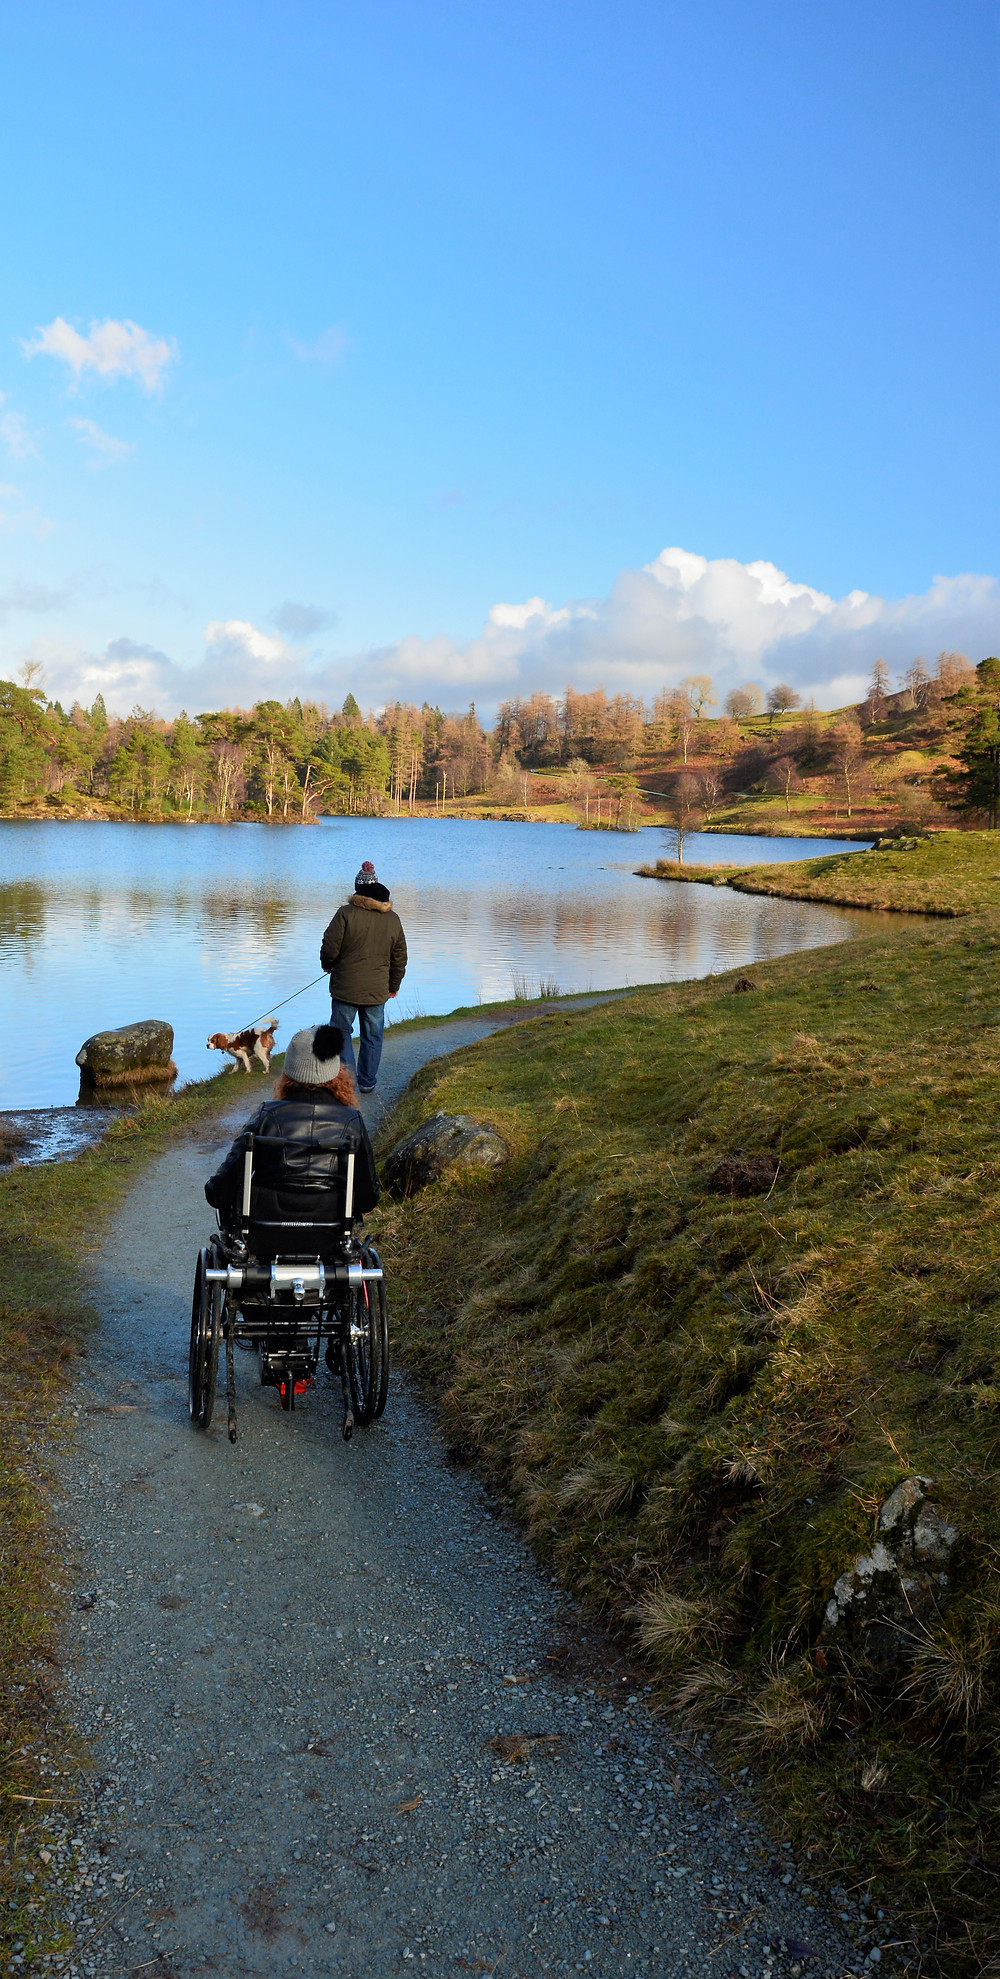 Carrie-Ann Lightley disabled travel blogger enjoying an accessible wheel around Tarn Hows, Coniston, Lake District, UK